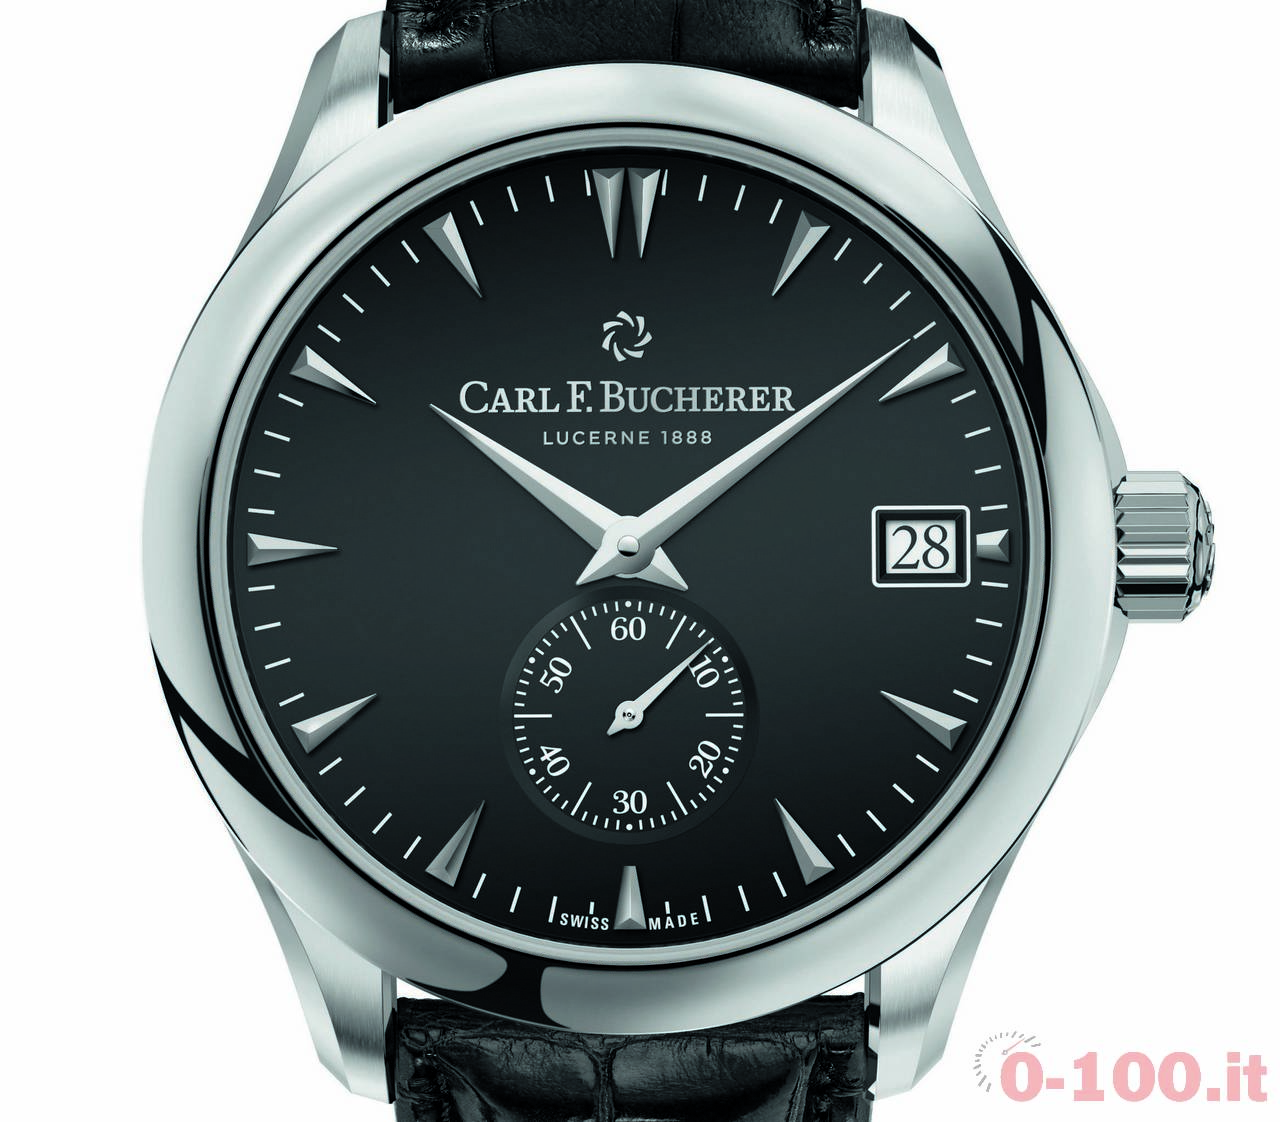 baselworld-2016-carl-f-bucherer-manero-peripheral_0-1002